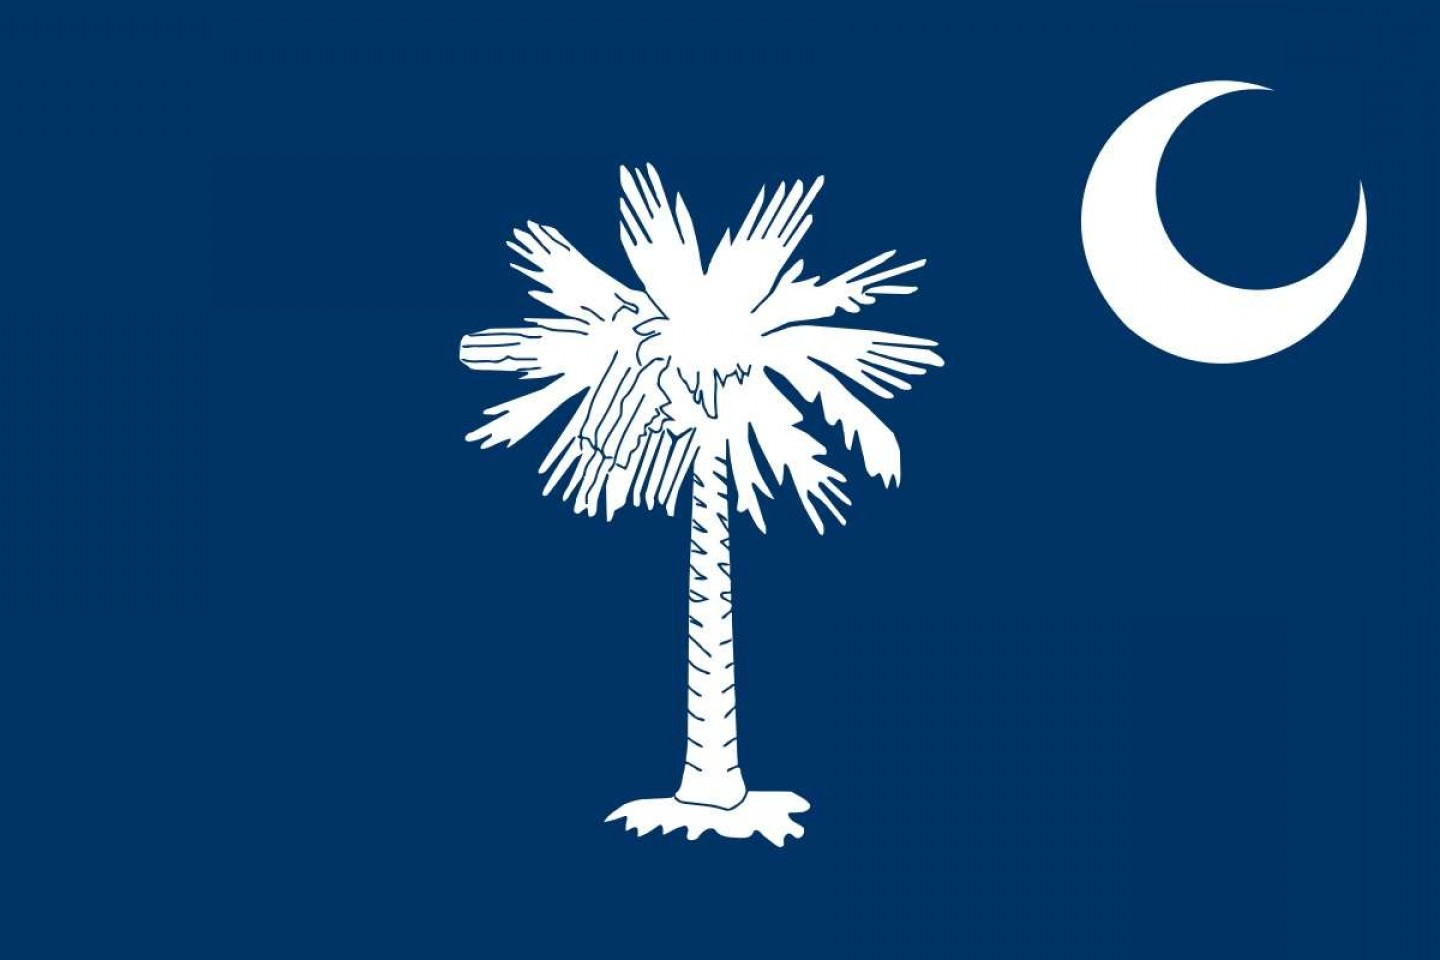 BBB Logo In Vector Form: Bbb Serving Central South Carolina And Charleston